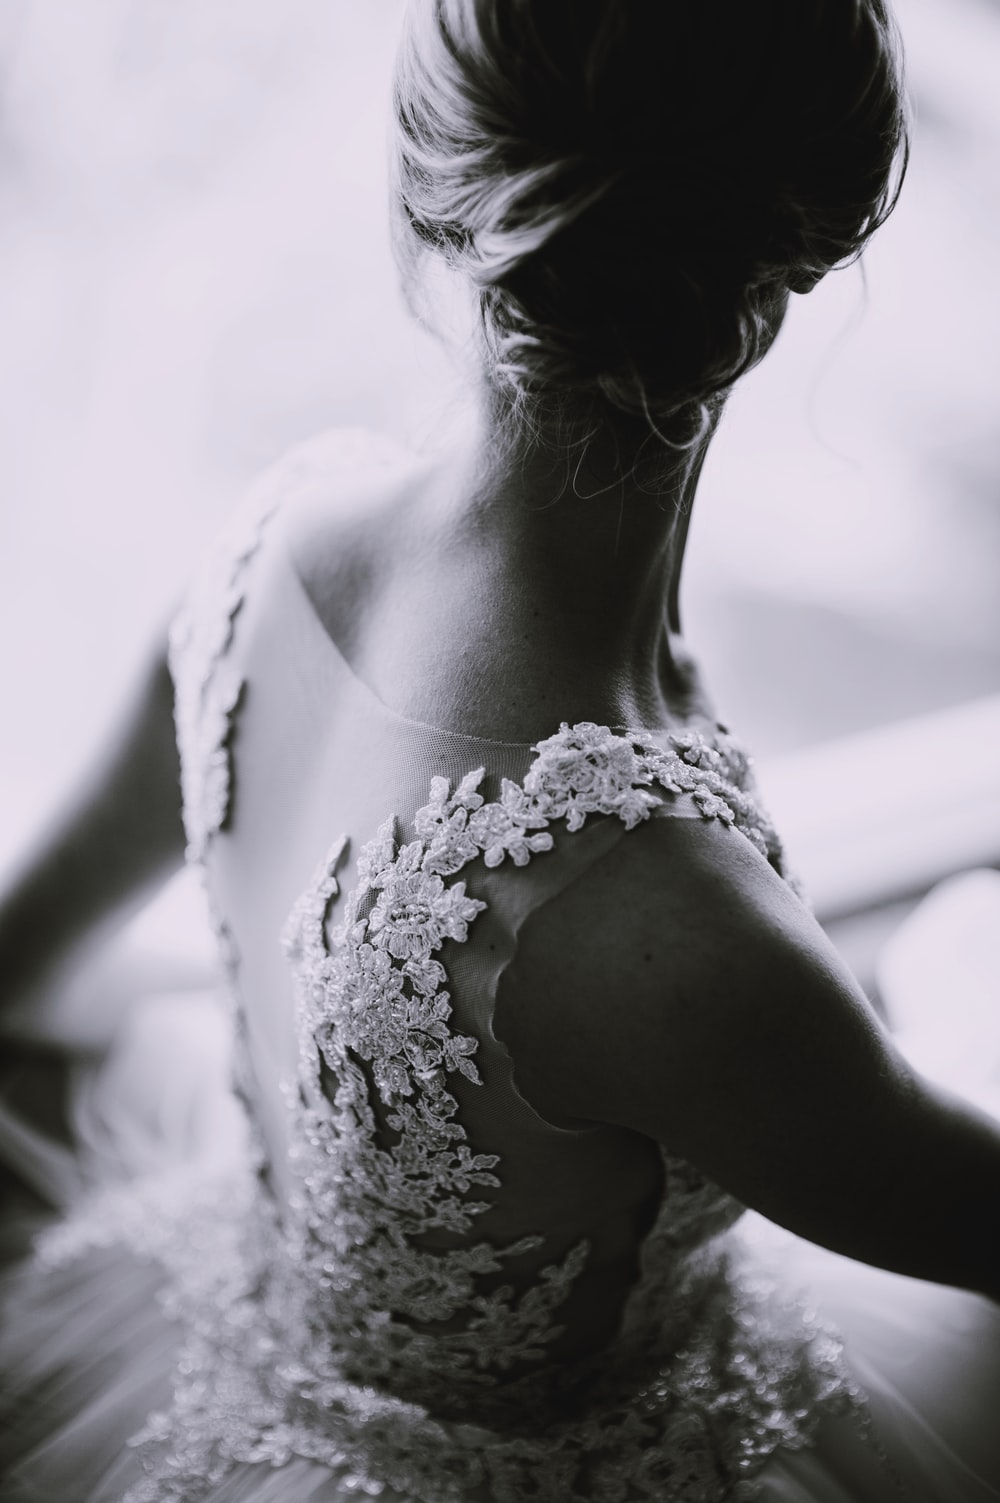 grayscale photography of a woman in lace sleeveless dress